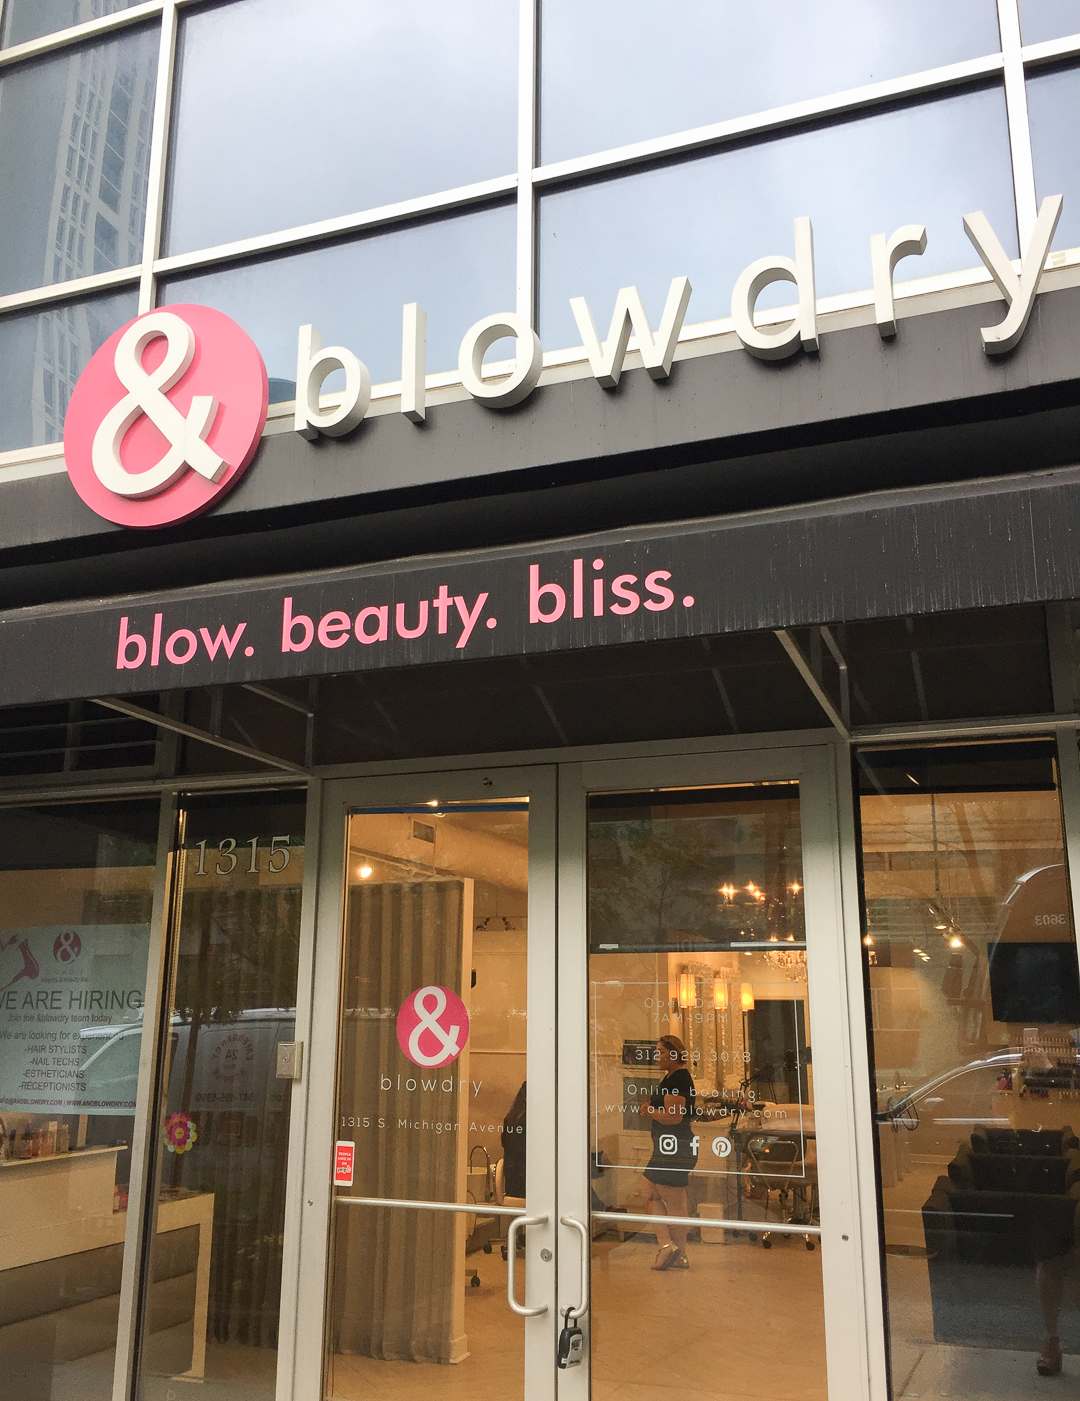 &blowdry, Blowout in Chicago, Beauty Break, Chicago Salon Review, Plus Size Style, Plus Size Fashion, Style Plus Curves, Chicago Blogger, Chicago Plus Size Blogger, Plus Size Blogger, Amber McCulloch